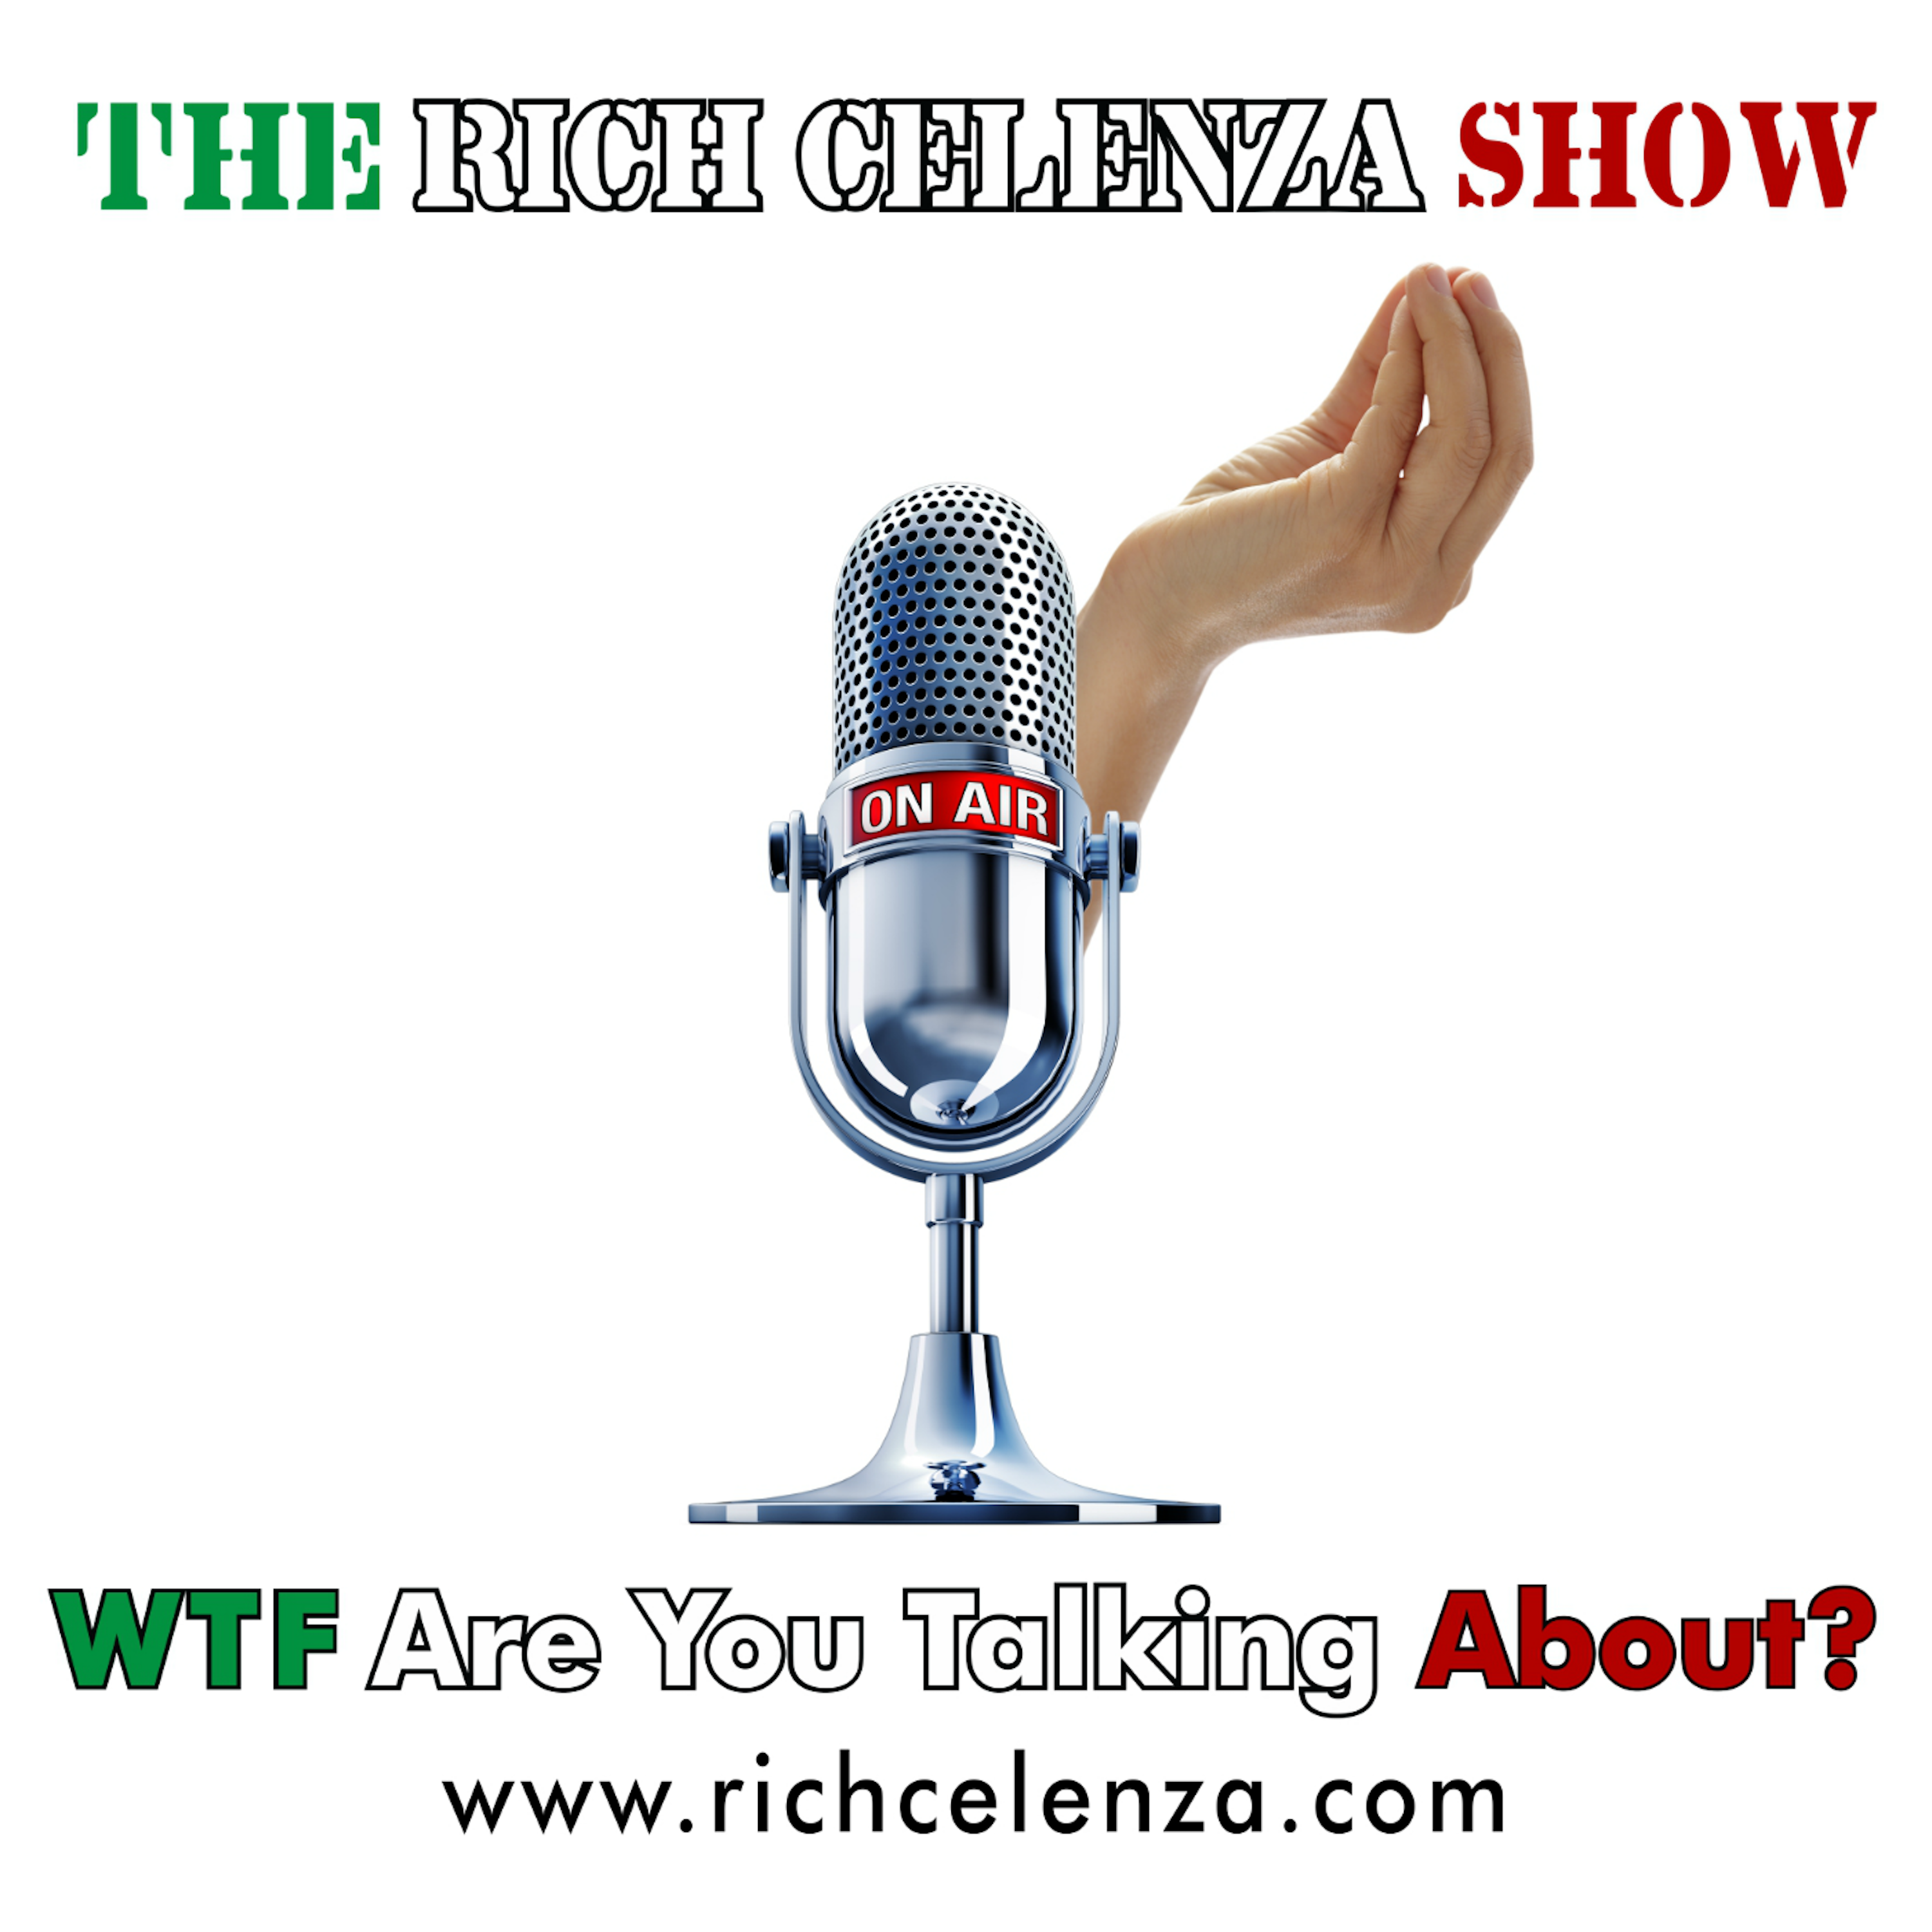 The Rich Celenza Show - WTF Are You Talking About? show art